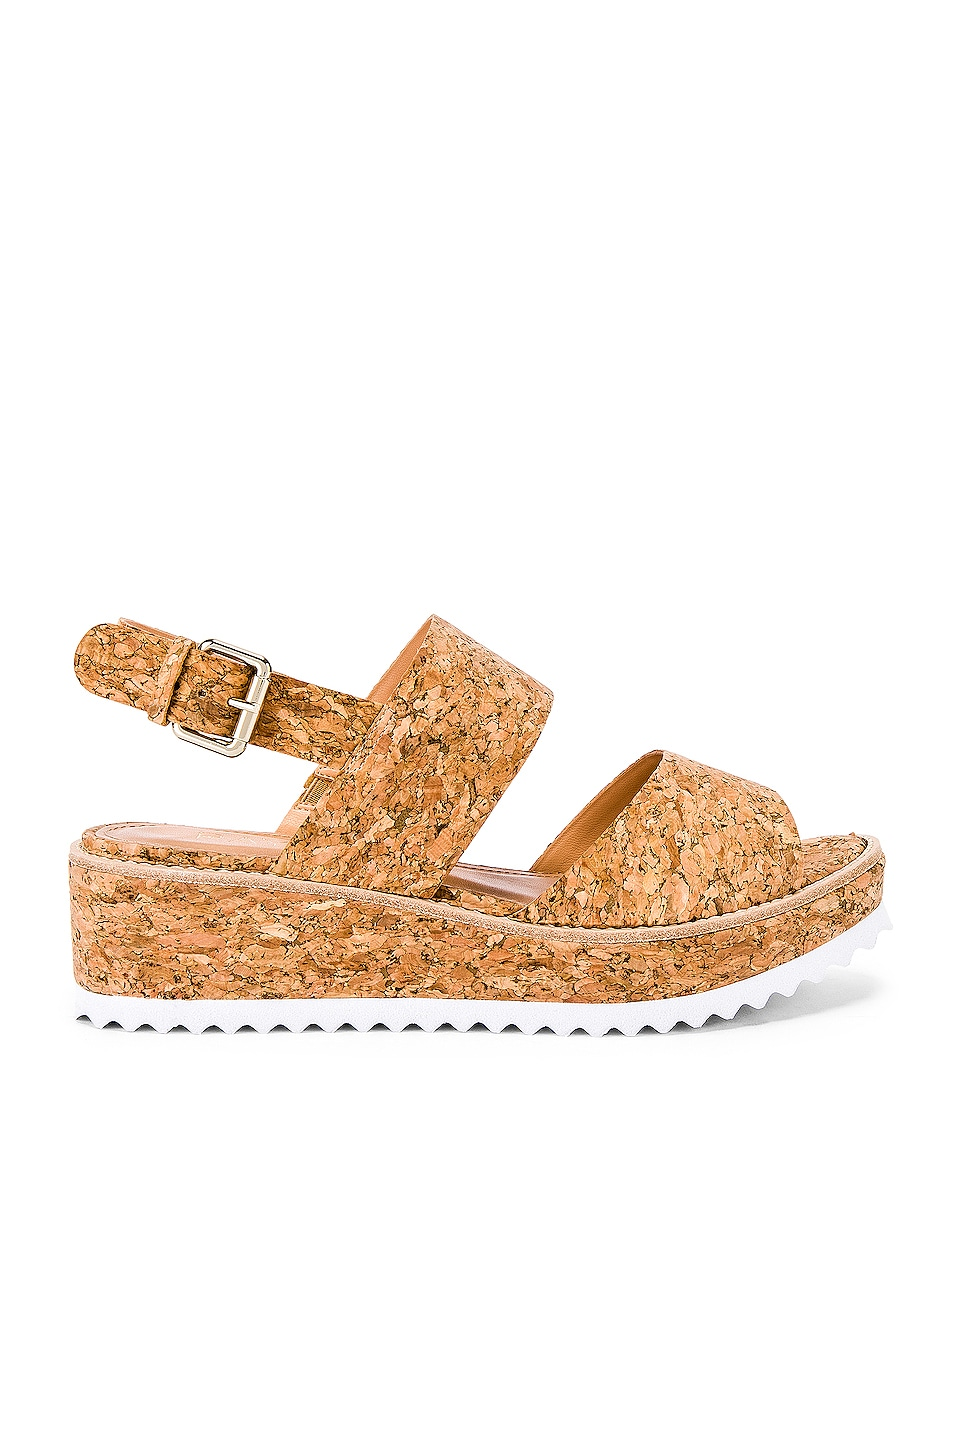 RAYE Azalea Wedge in Natural